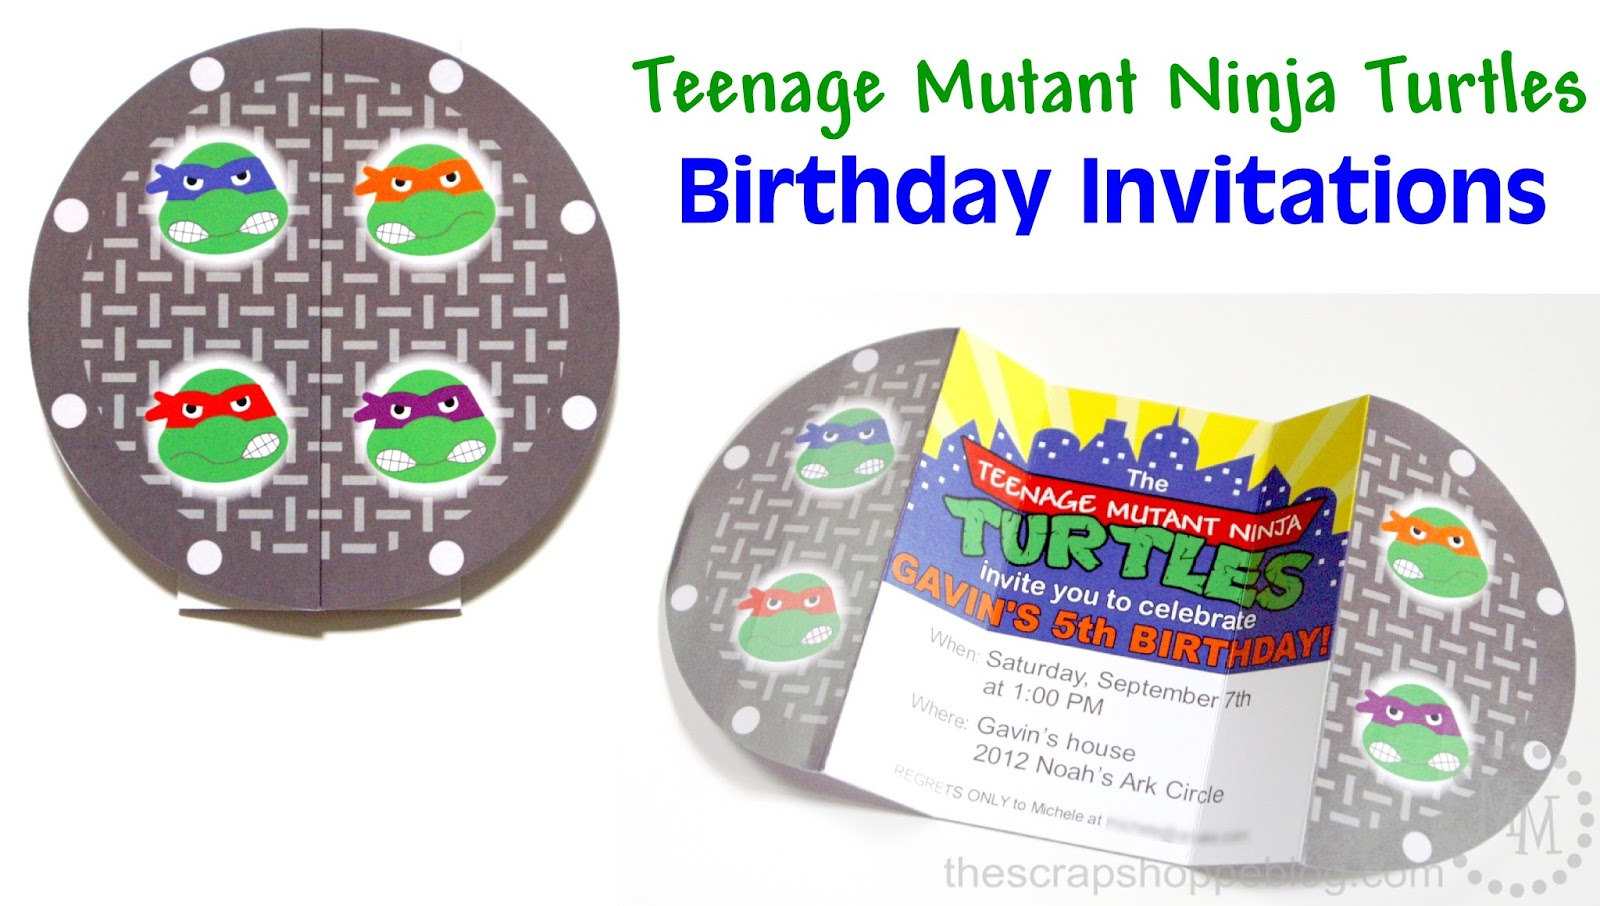 Teenage mutant ninja turtles invitations template - photo#8